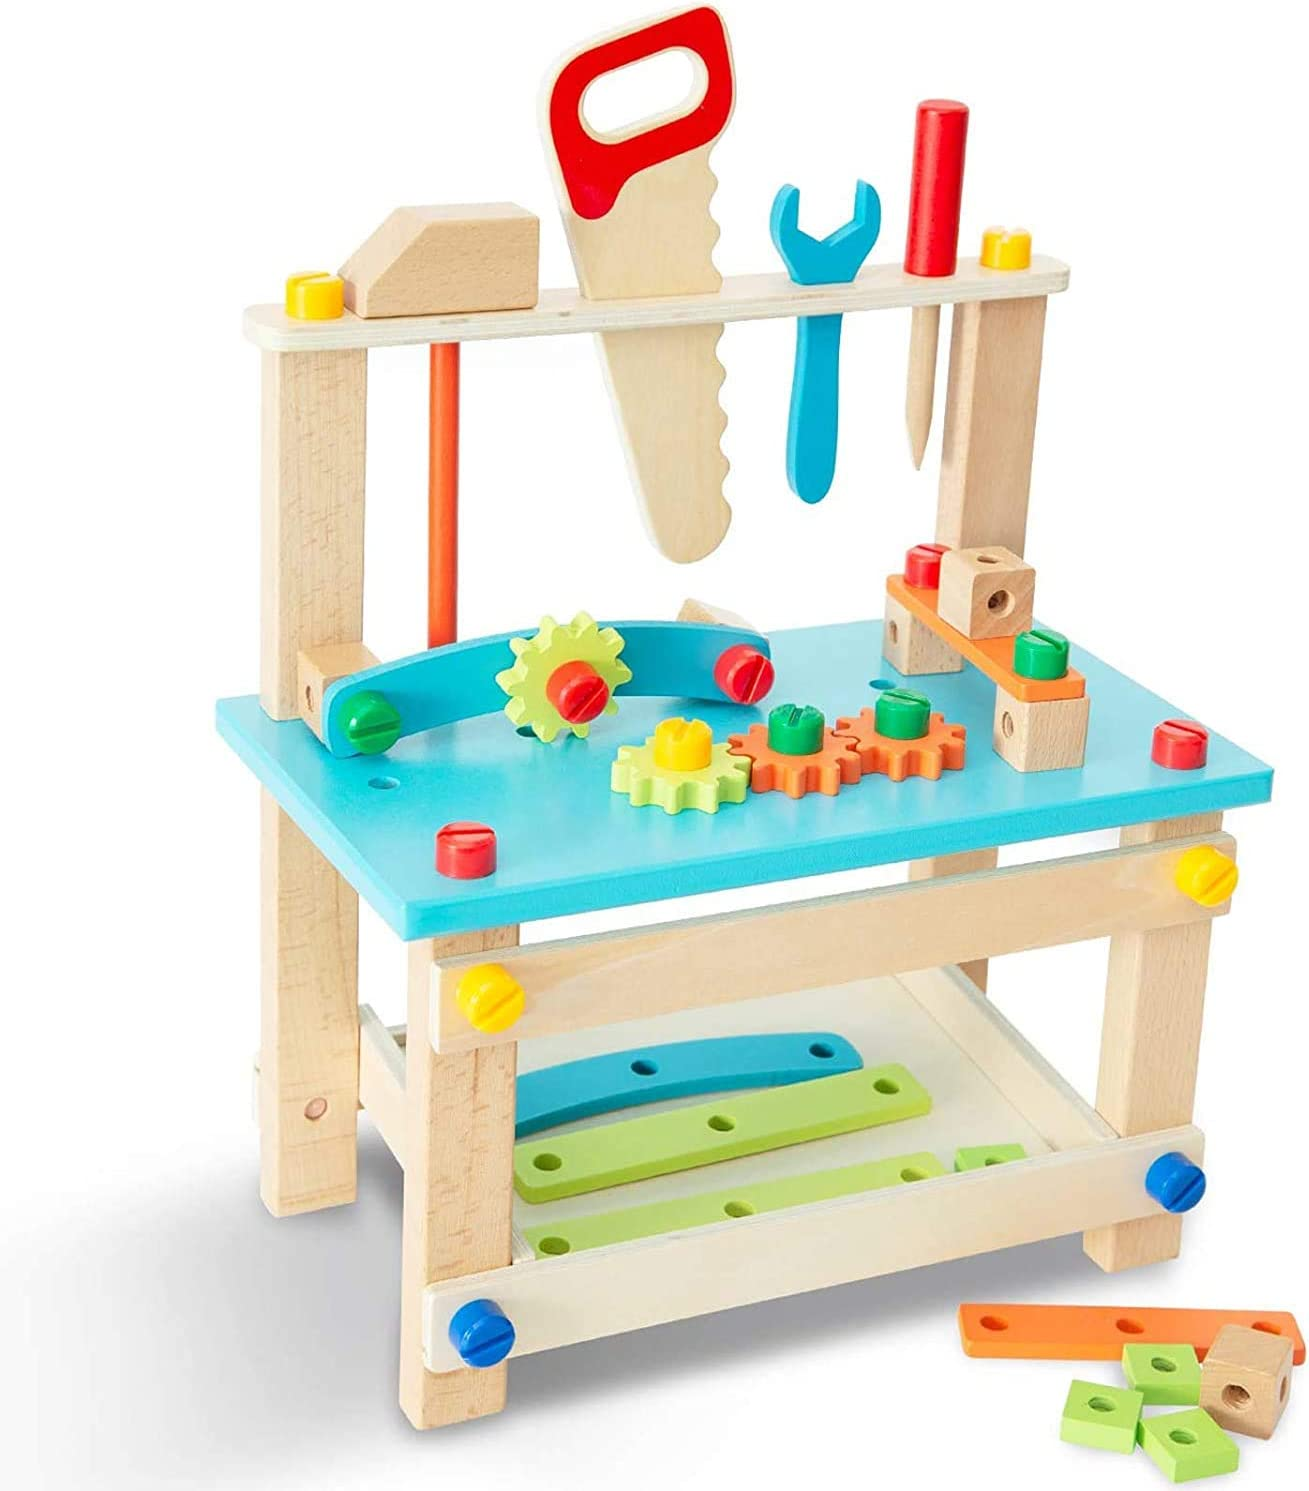 ELTUILMP Wooden Workbench Building Toy Construction Tools, Play Tool Workbench Set for Kids Toddlers, Wooden Tool Bench Workshop Gift for Boys Girls 3-Year-Old and Up